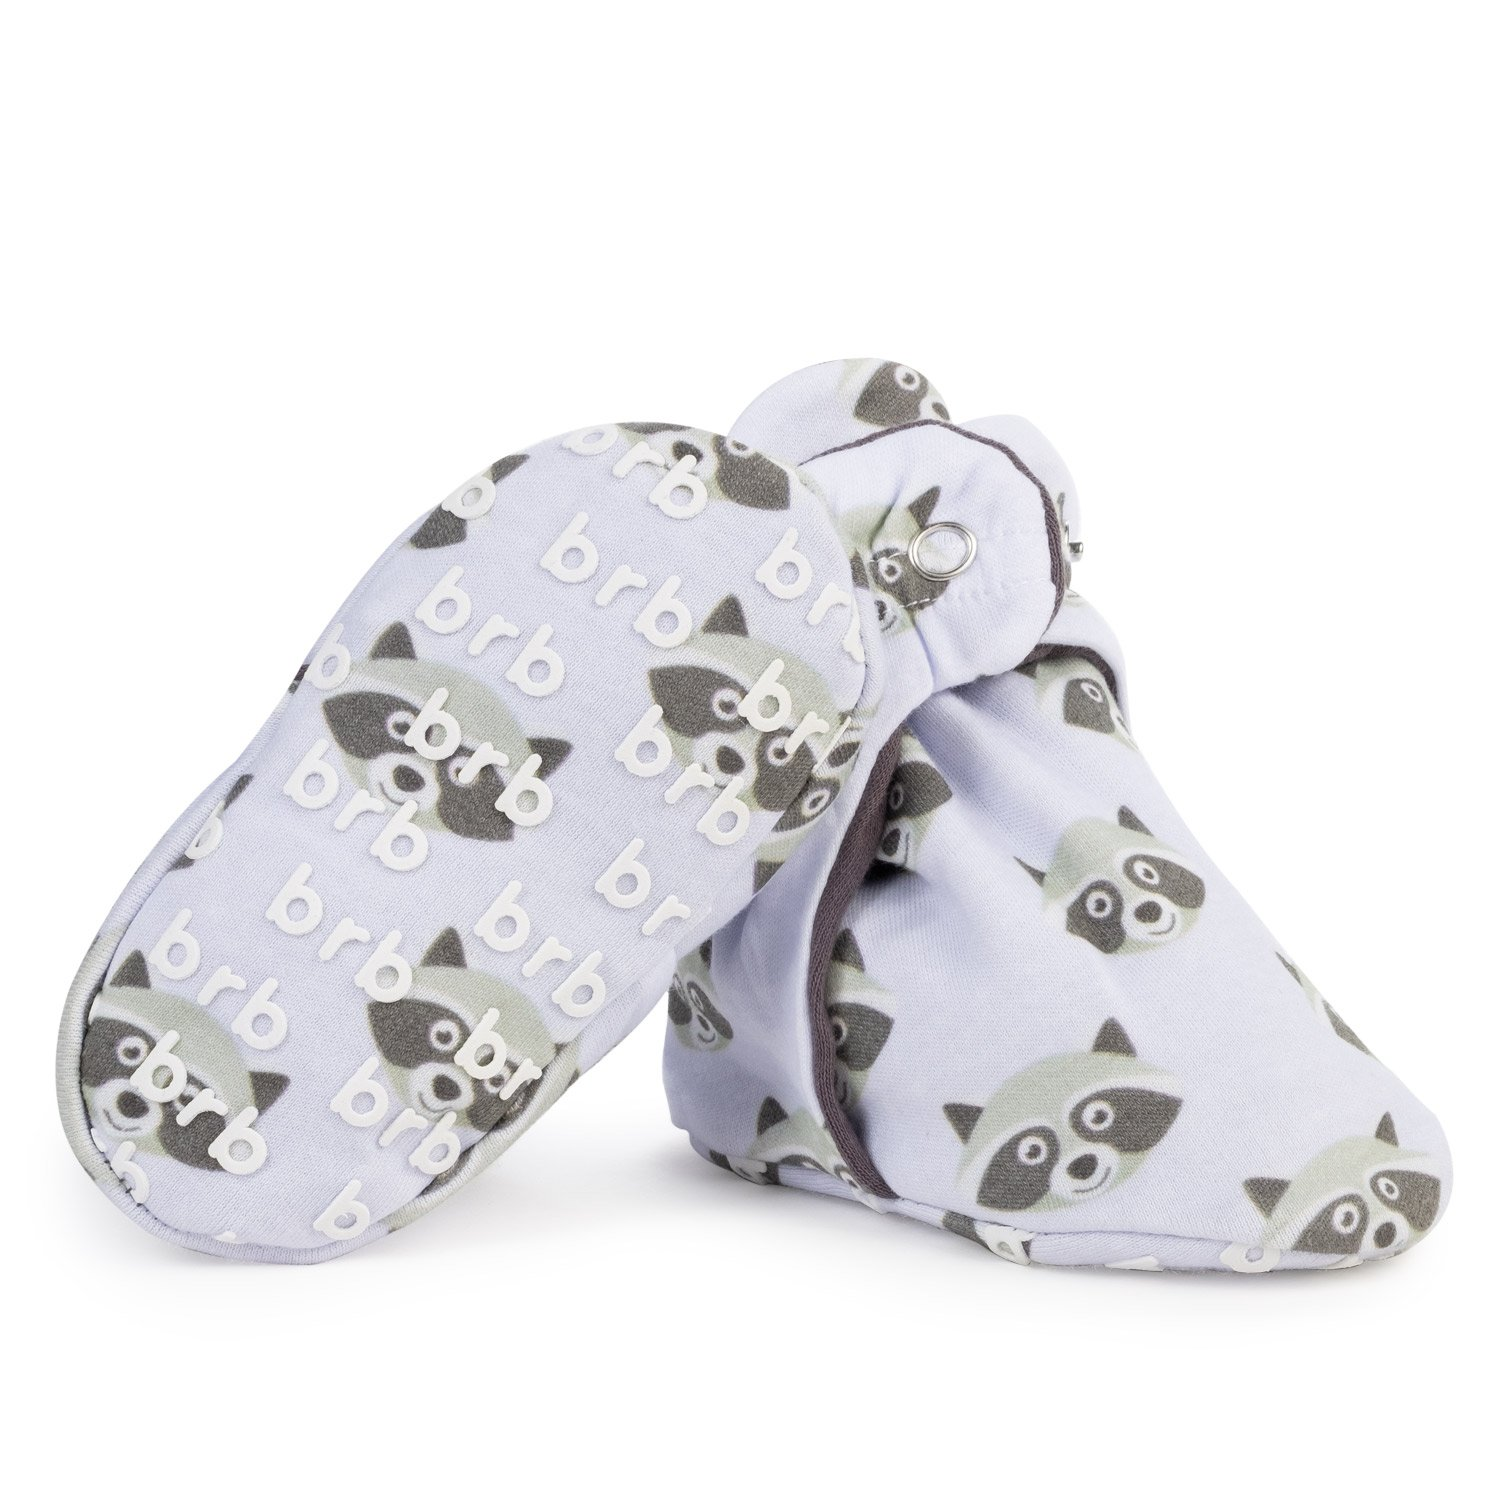 Lightweight Organic Cotton Baby Booties - Grippers, 3 Snaps - No Sock Bootie for Newborn Or Infant Boys & Girls (Bandits, US 4)